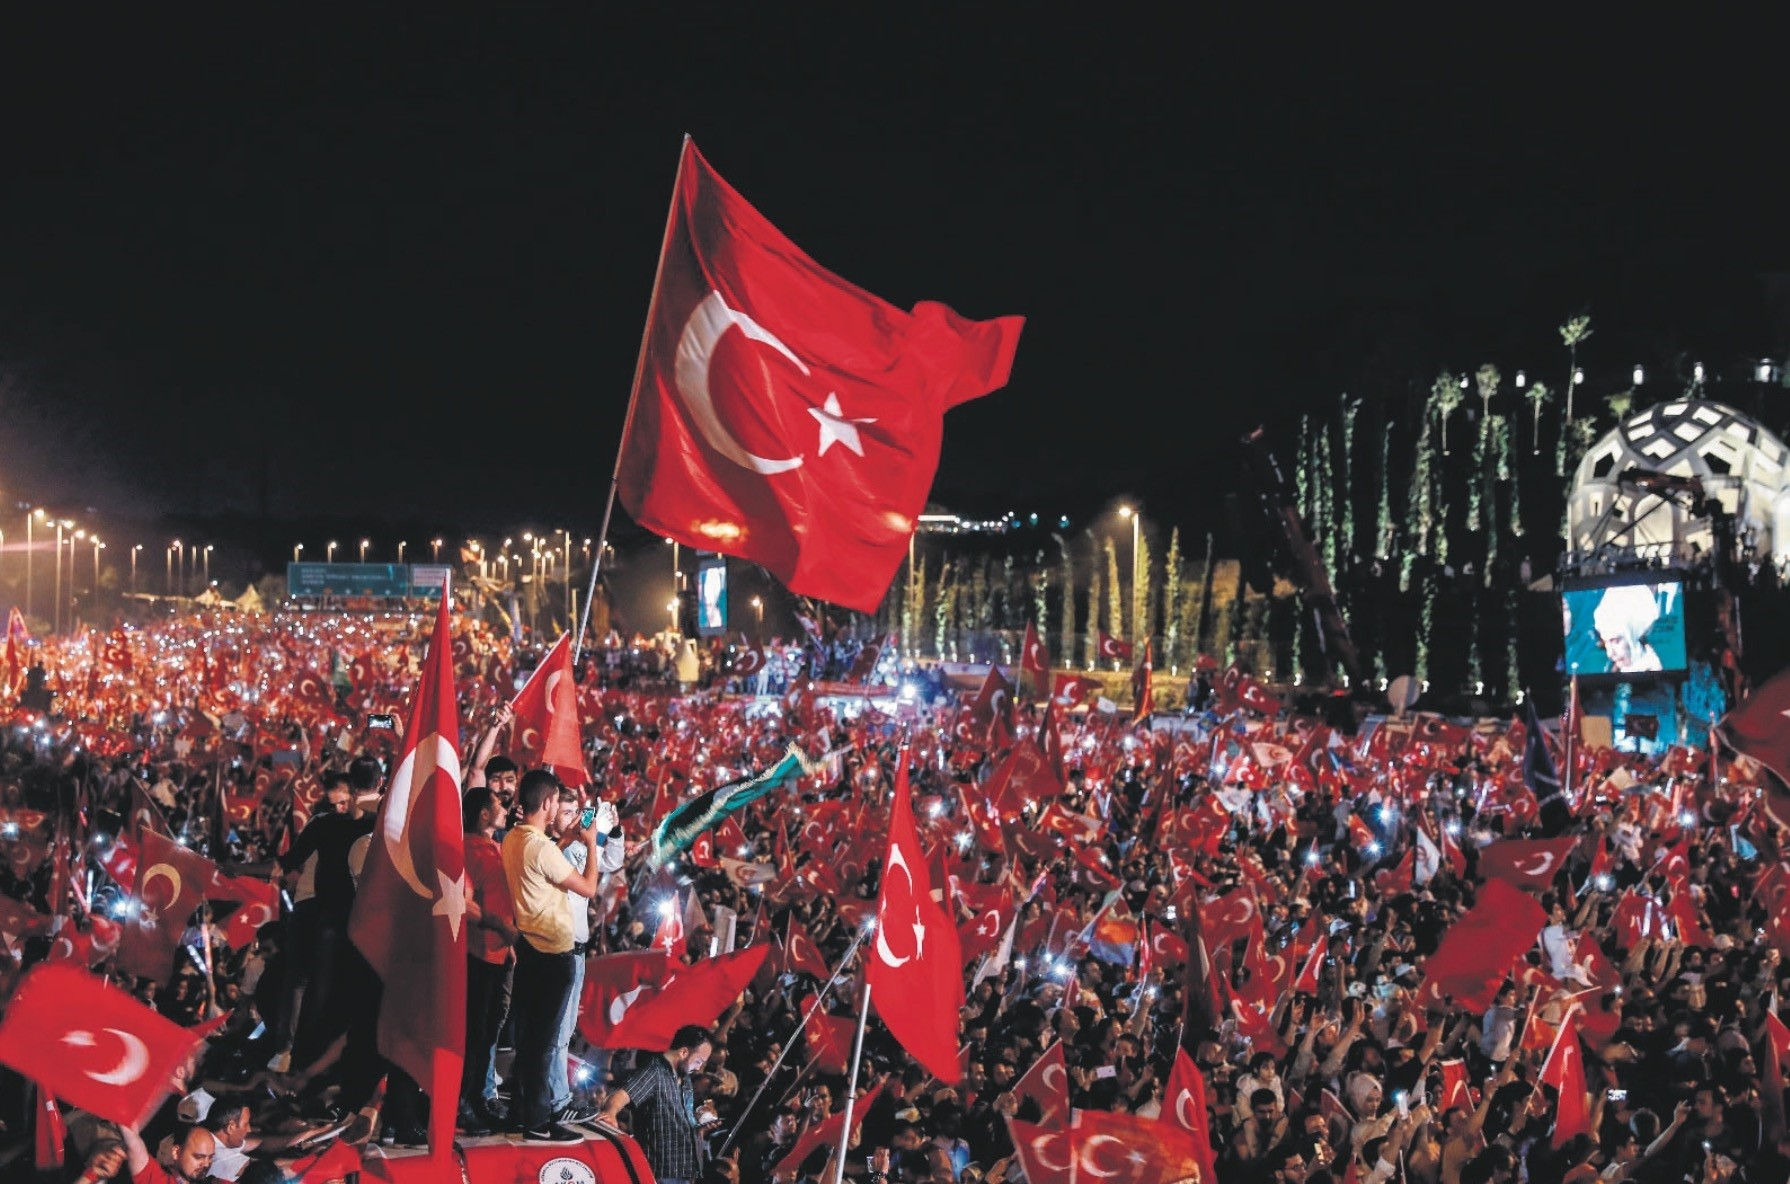 A large commemoration will be held on Sunday at the July 15 Martyru2019s Monument in Istanbul to mark the victory over FETu00d6u2019s failed coup.